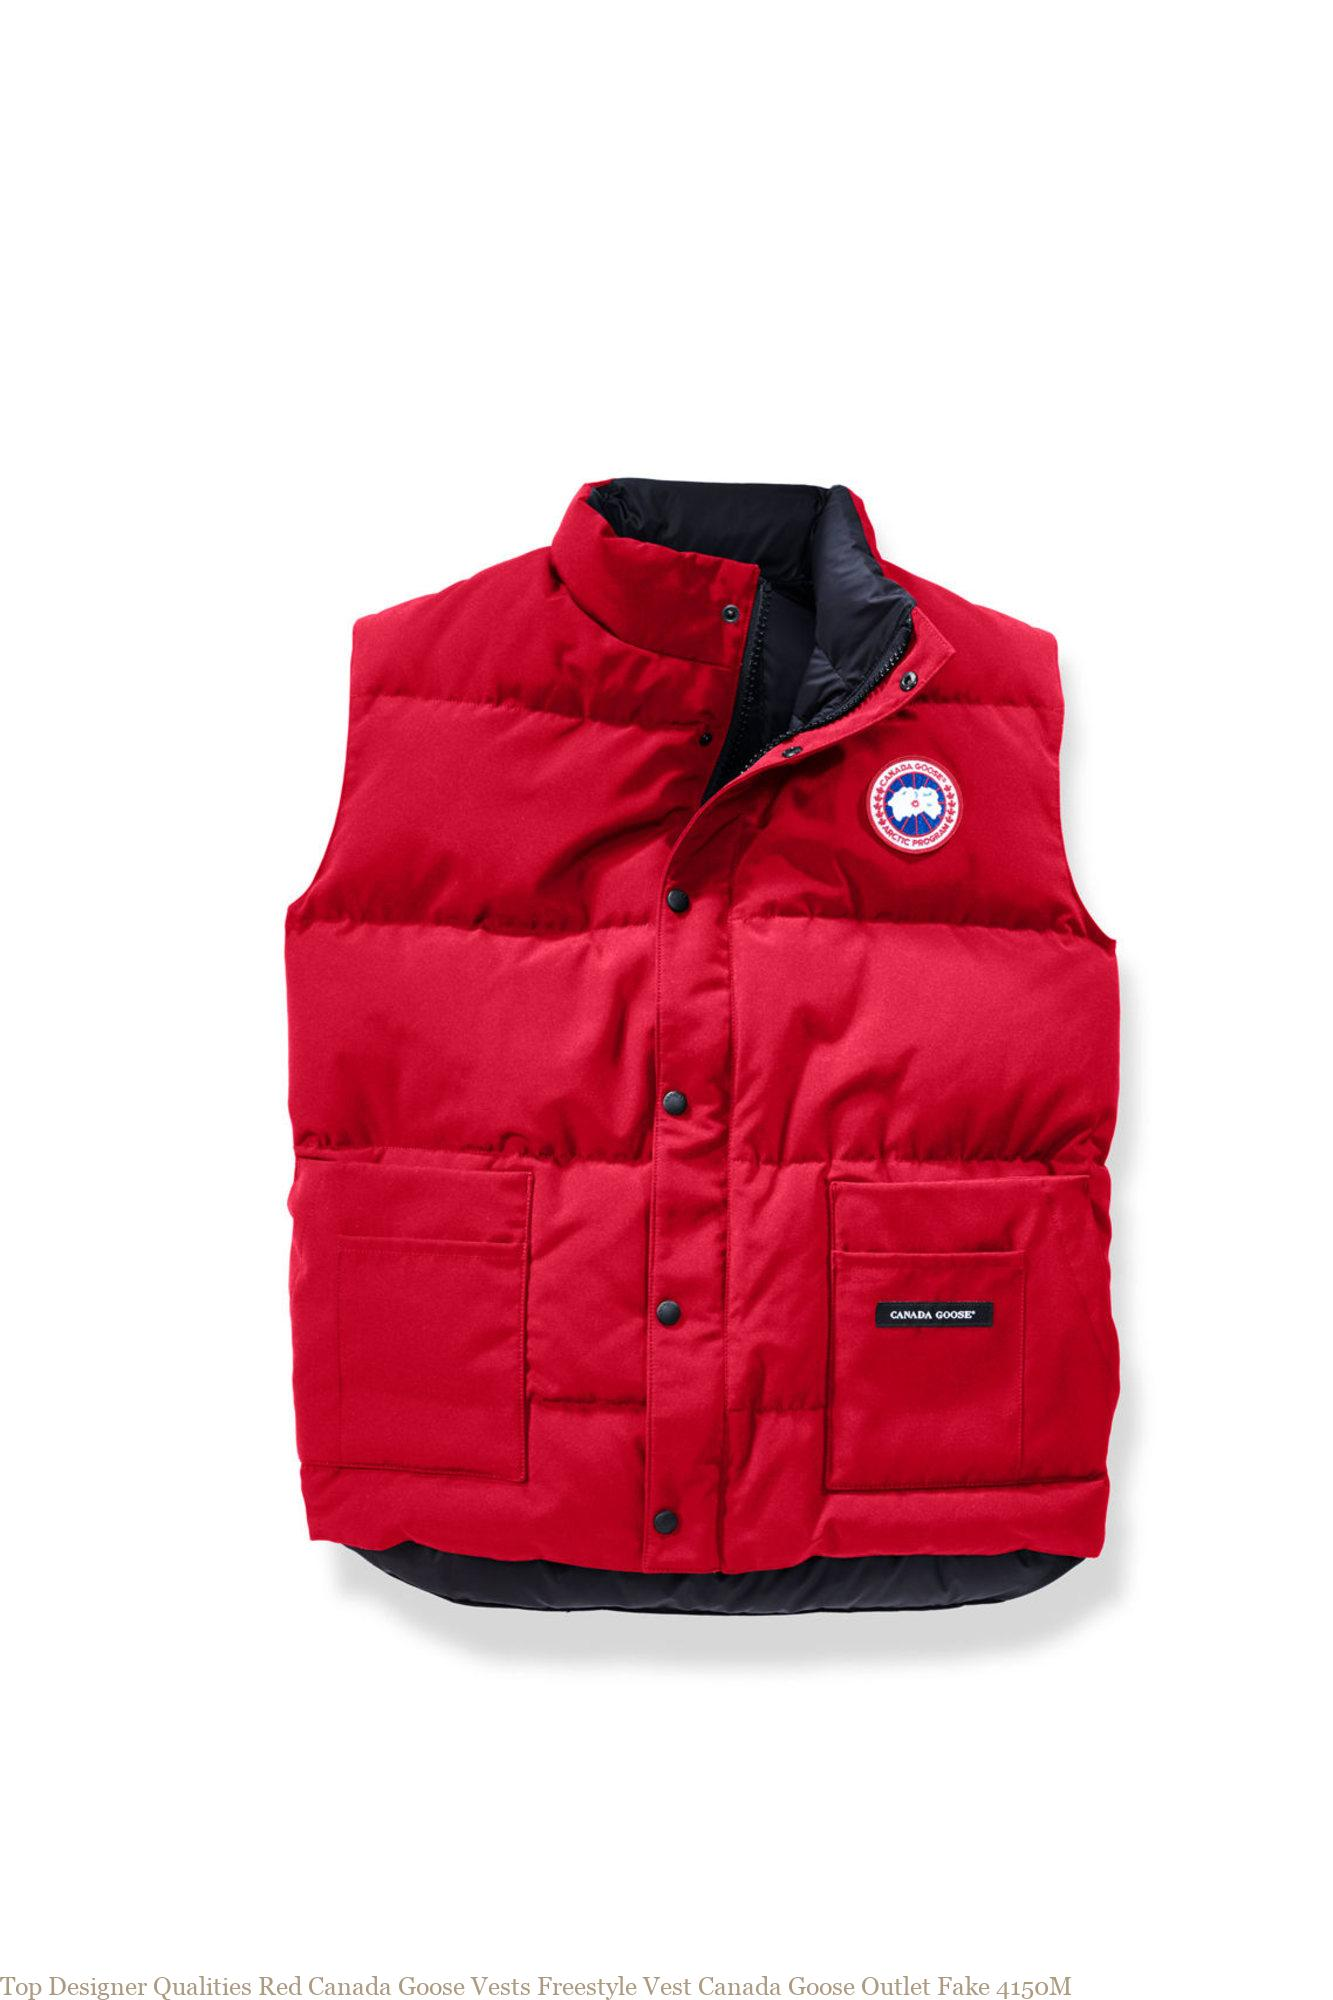 Top Designer Qualities Red Canada Goose Vests Freestyle Vest Canada Goose Outlet Fake 4150M